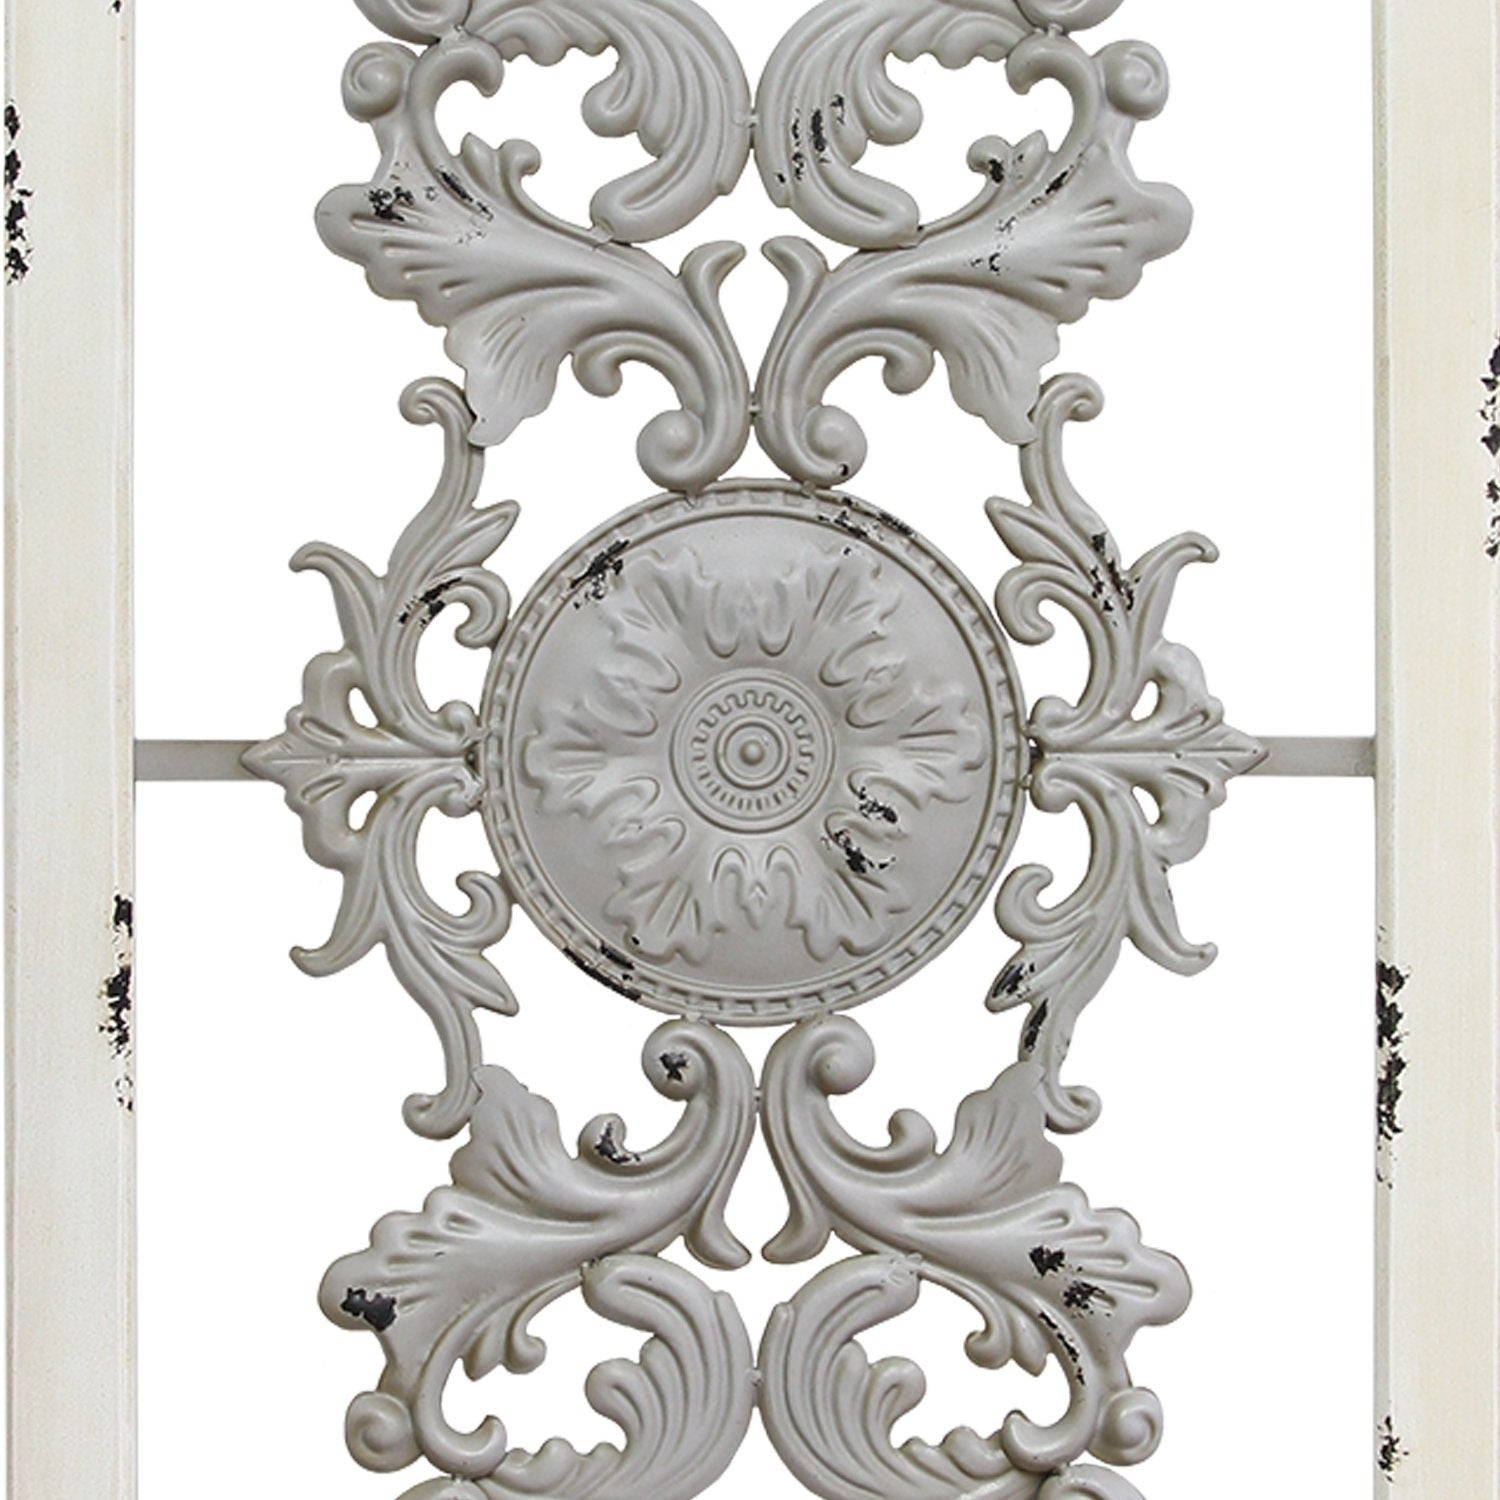 Stratton Home Decor Grey Scroll Panel Wall Decor throughout Scroll Panel Wall Decor (Image 22 of 30)